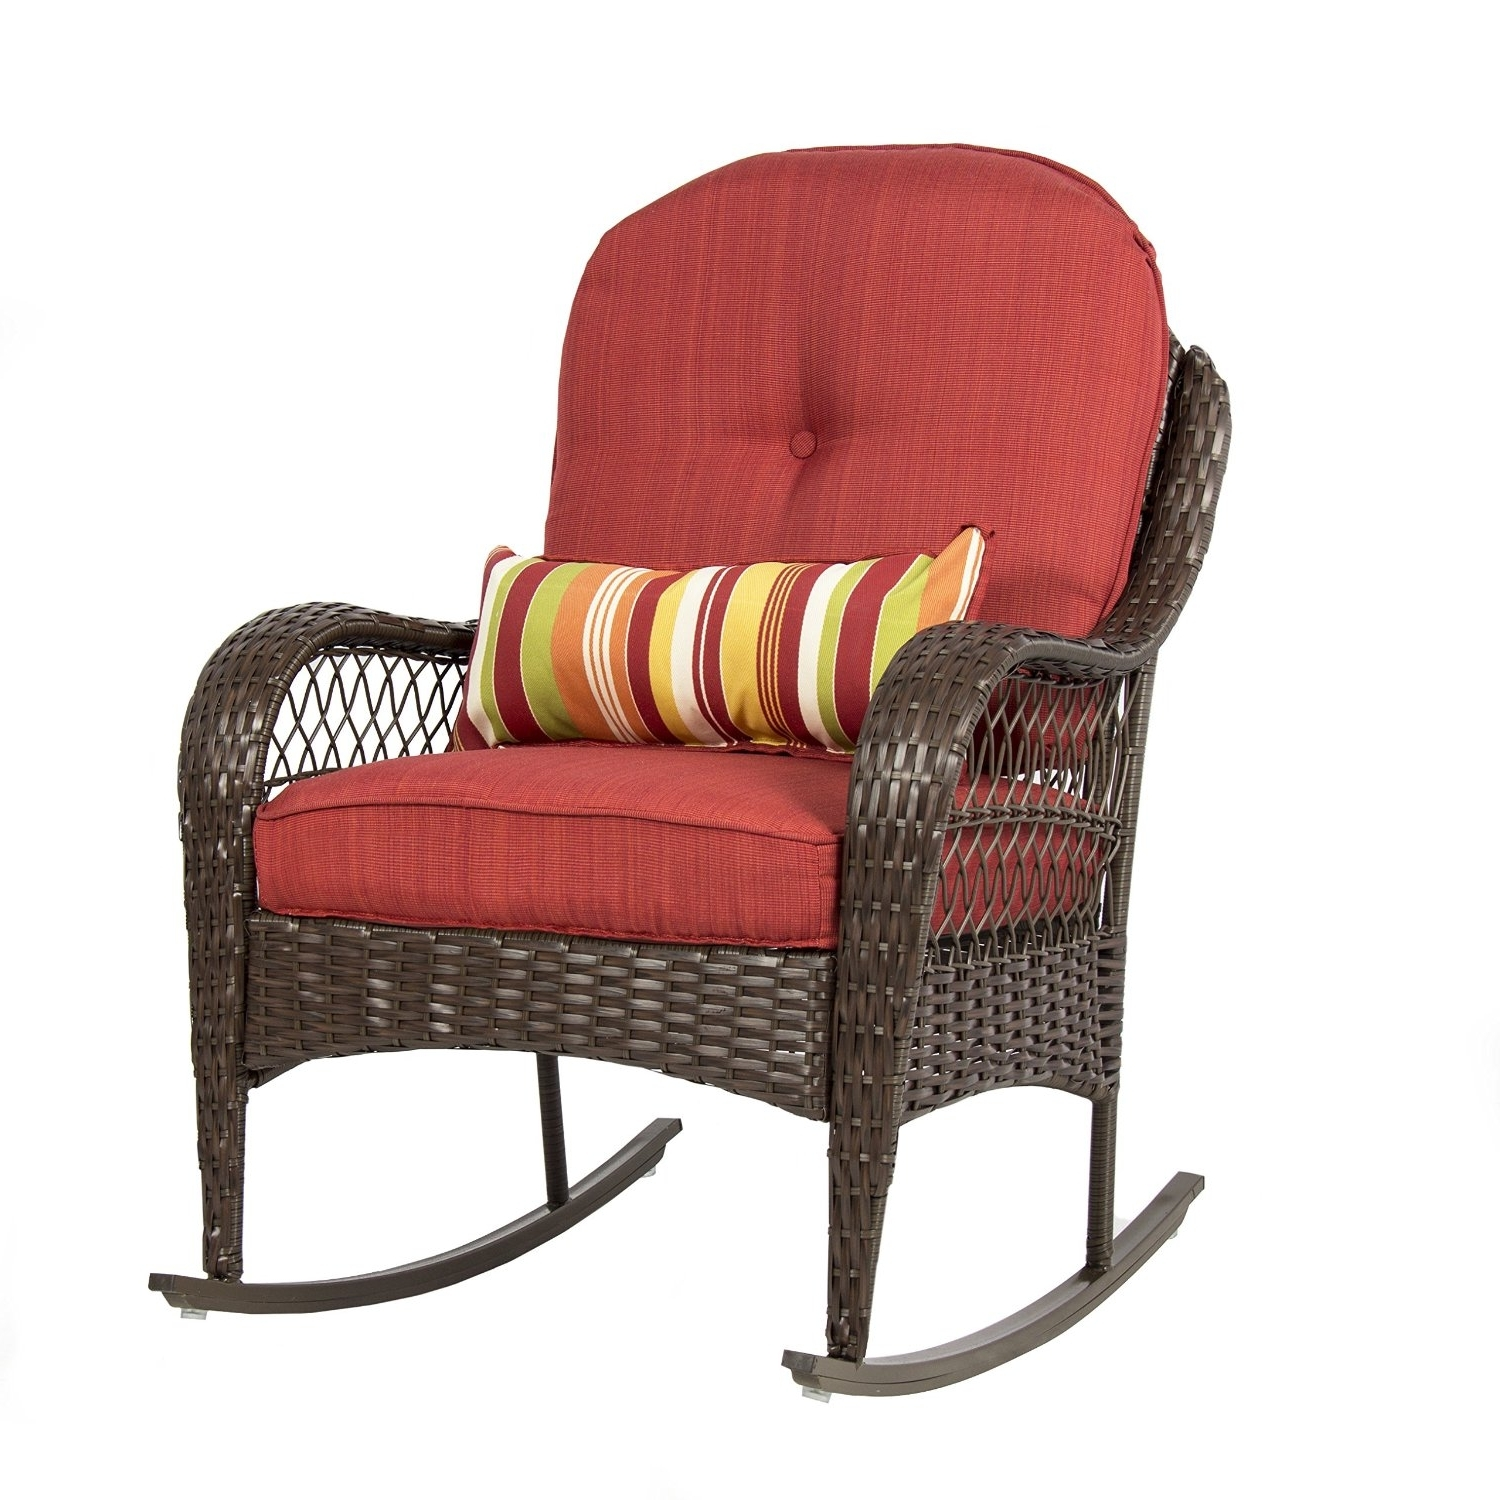 Most Recent Kevinjohnsonformayor – Page 9 – Rocking Chair Reborn Inside Padded Patio Rocking Chairs (View 7 of 20)